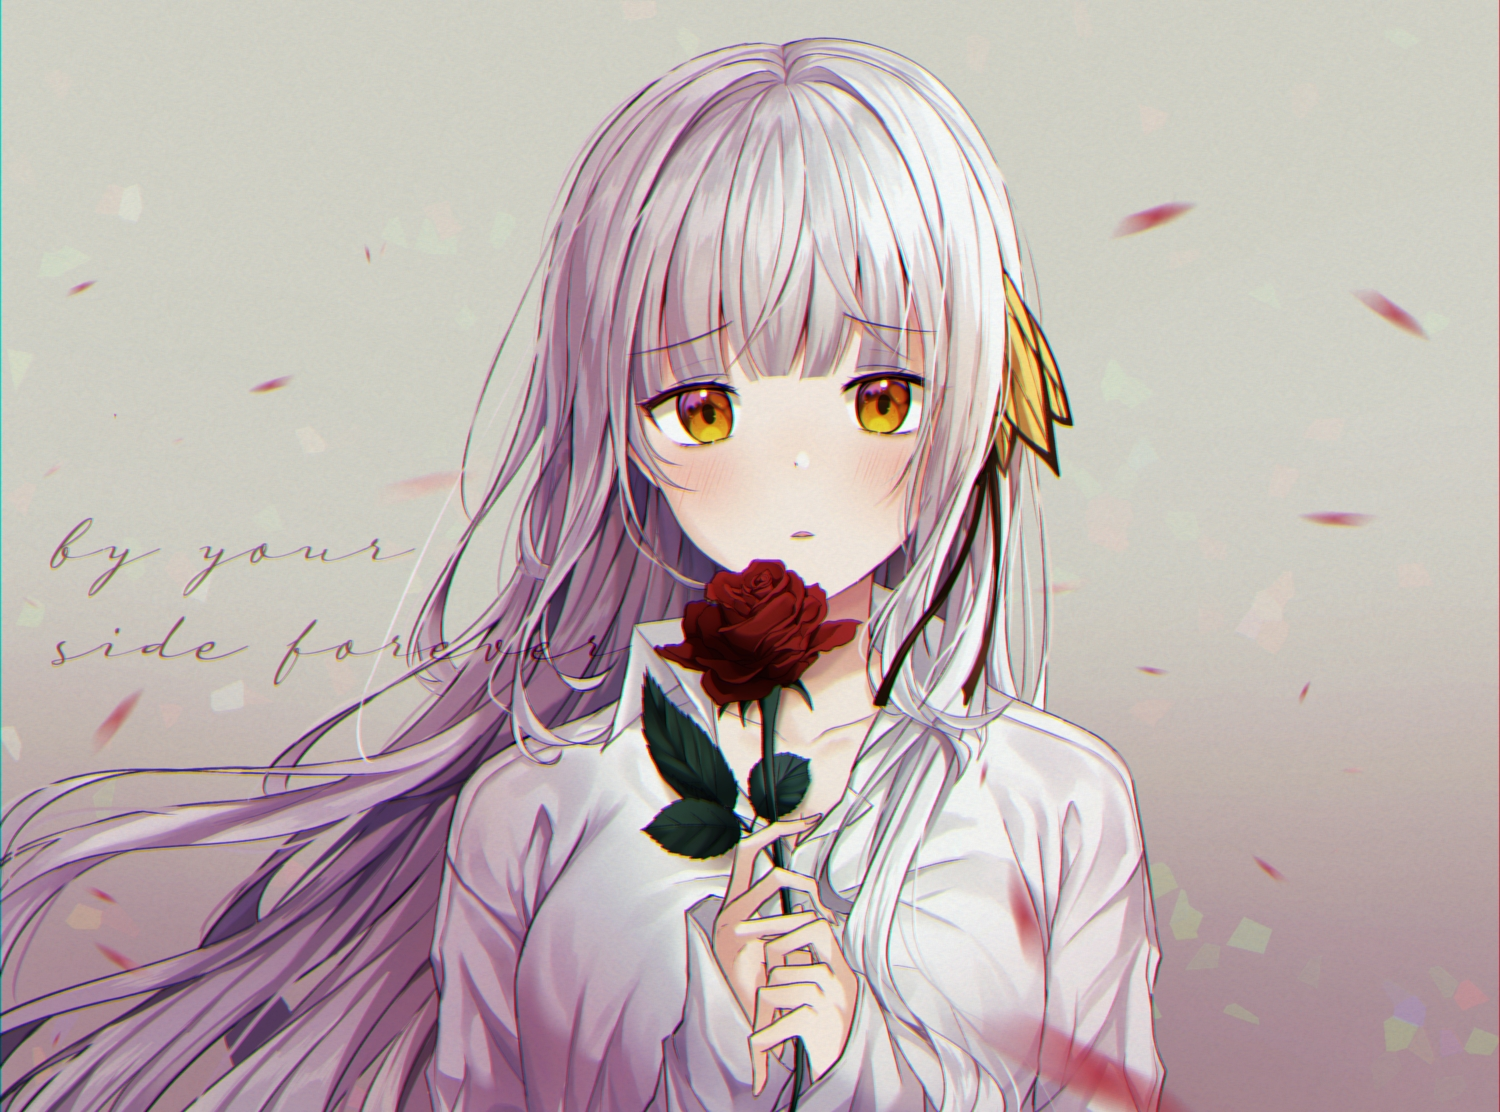 blush flowers gray_hair long_hair miyo_(user_zdsp7735) original rose shirt yellow_eyes